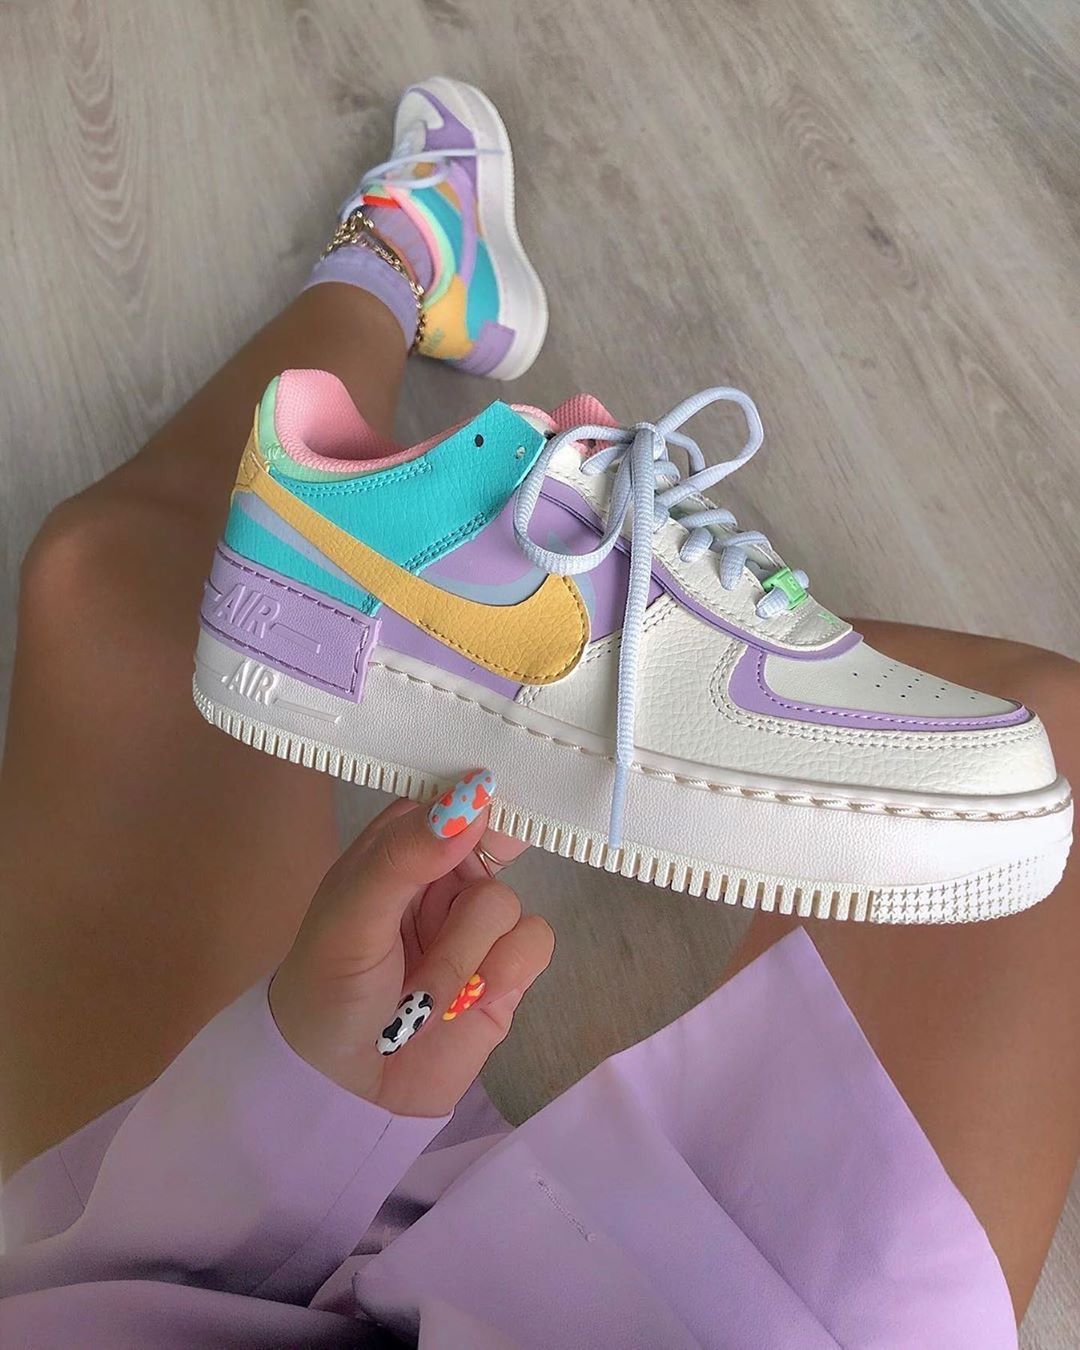 Nike Air Force 1 Shadow Pale Ivory Ci0919 101 Beige Yellow Purple Sneakers Fashion Jordan Shoes Girls Trendy Shoes Nike women's air force 1 shadow casual shoes. nike air force 1 shadow pale ivory